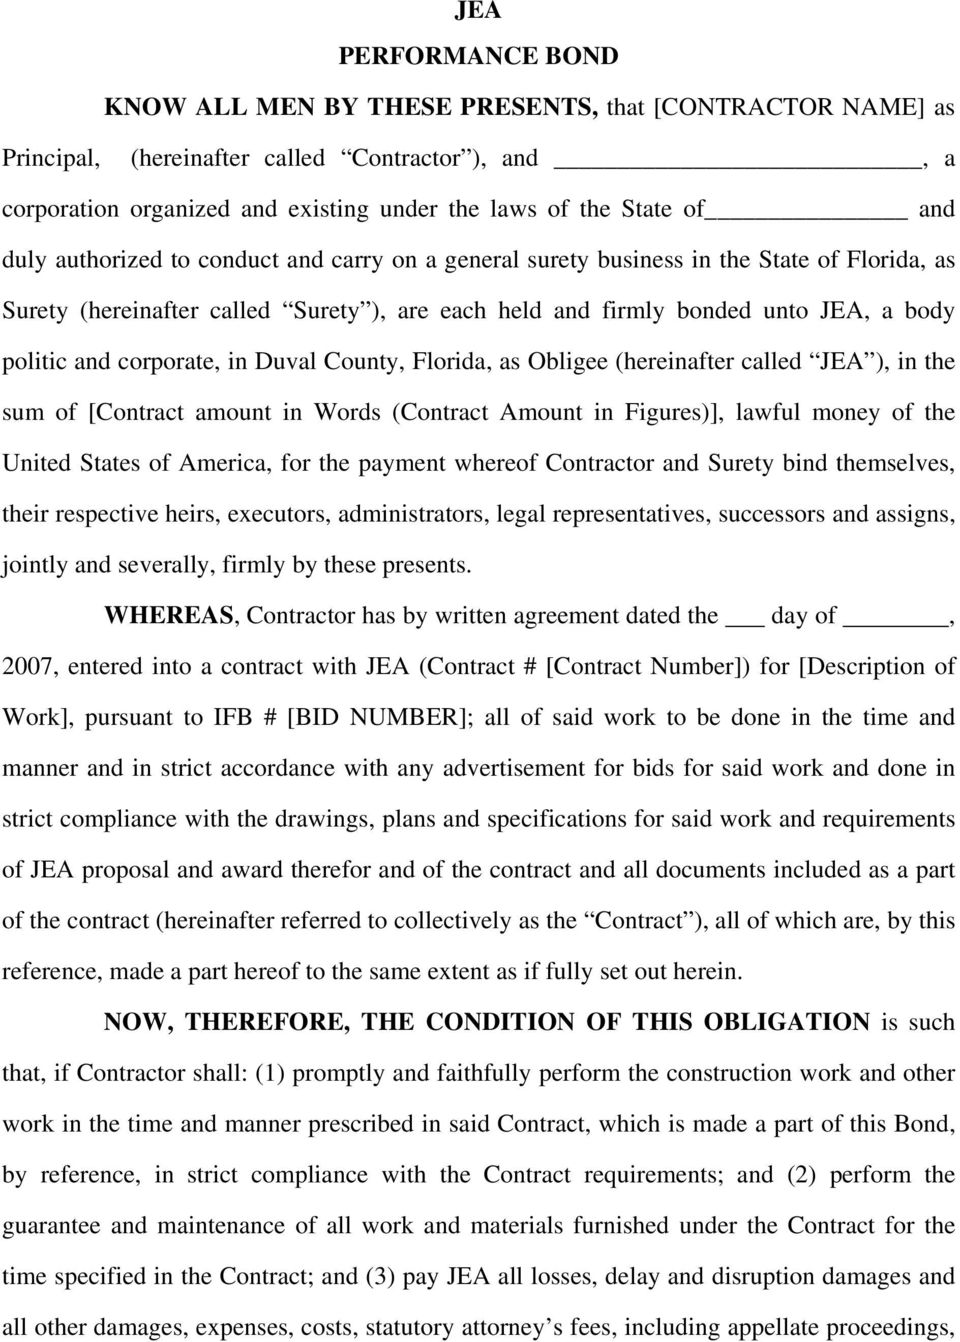 corporate, in Duval County, Florida, as Obligee (hereinafter called JEA ), in the sum of [Contract amount in Words (Contract Amount in Figures)], lawful money of the United States of America, for the